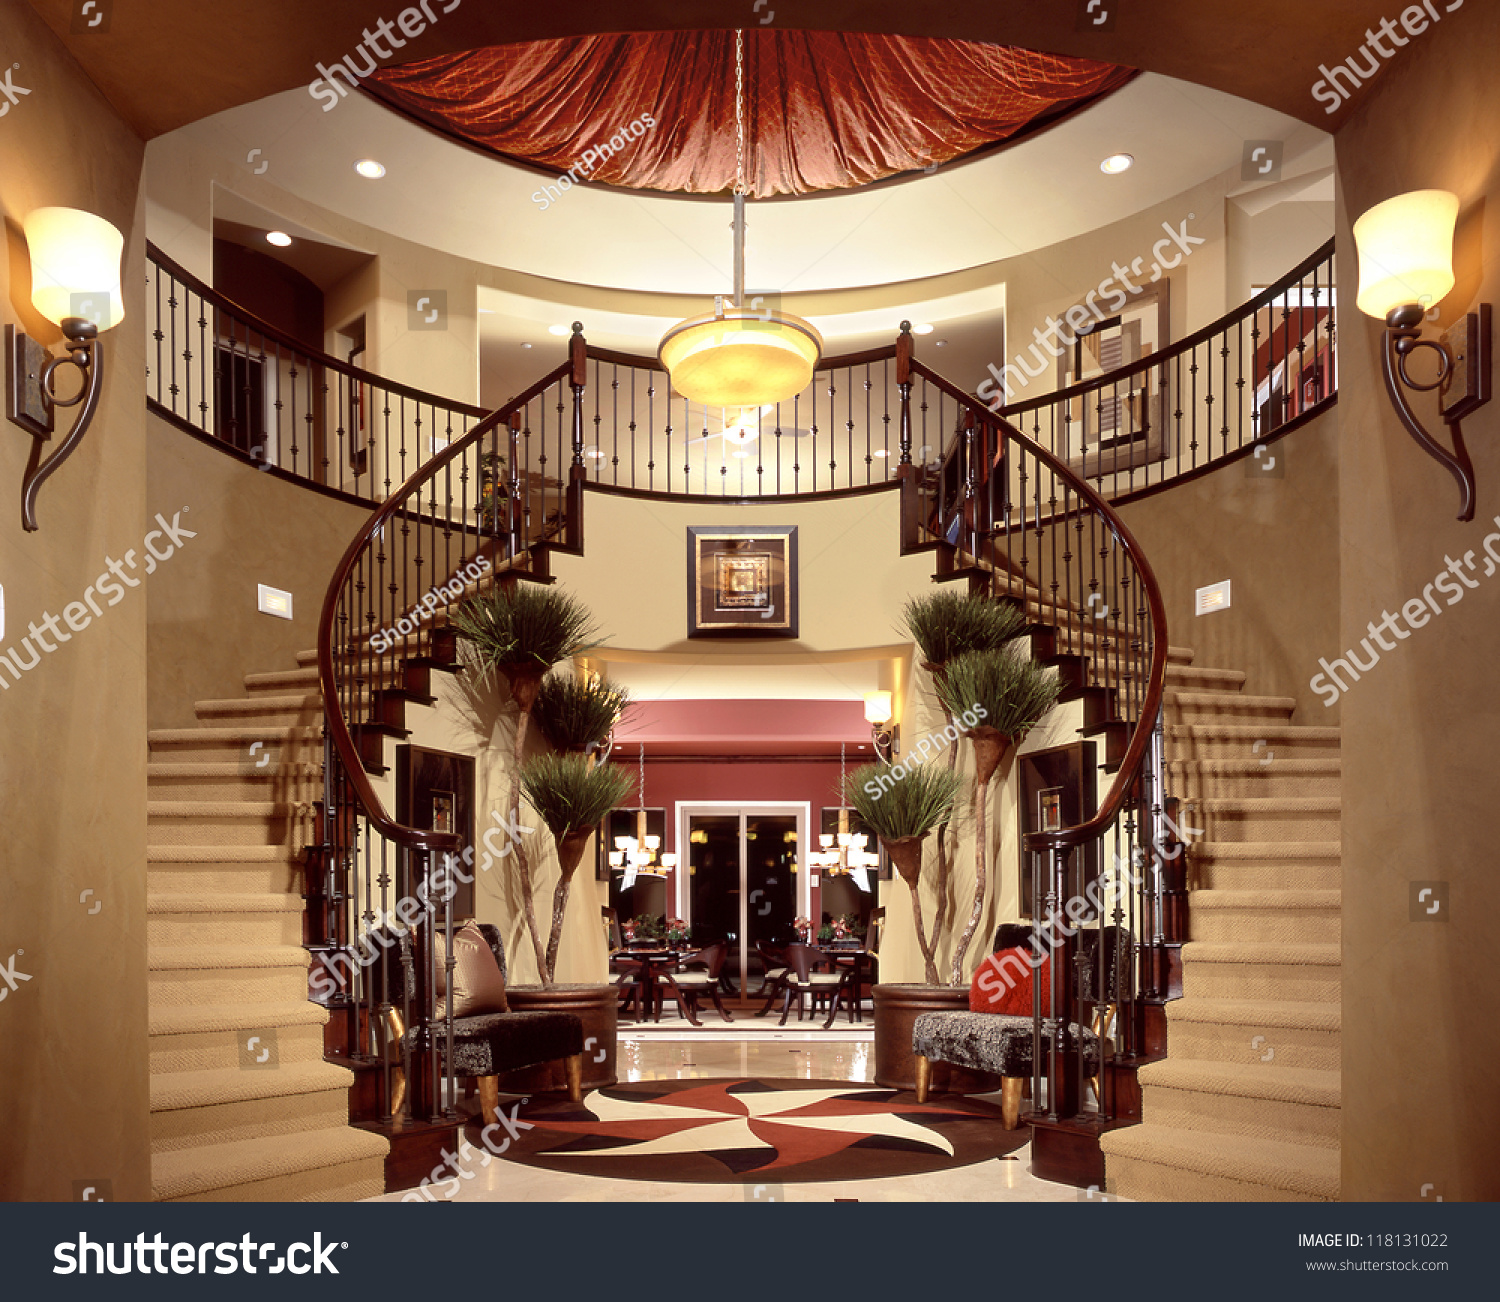 Beautiful Front Hall And Staircase: Beautiful Entry Staircase This Luxury Stairway Stock Photo